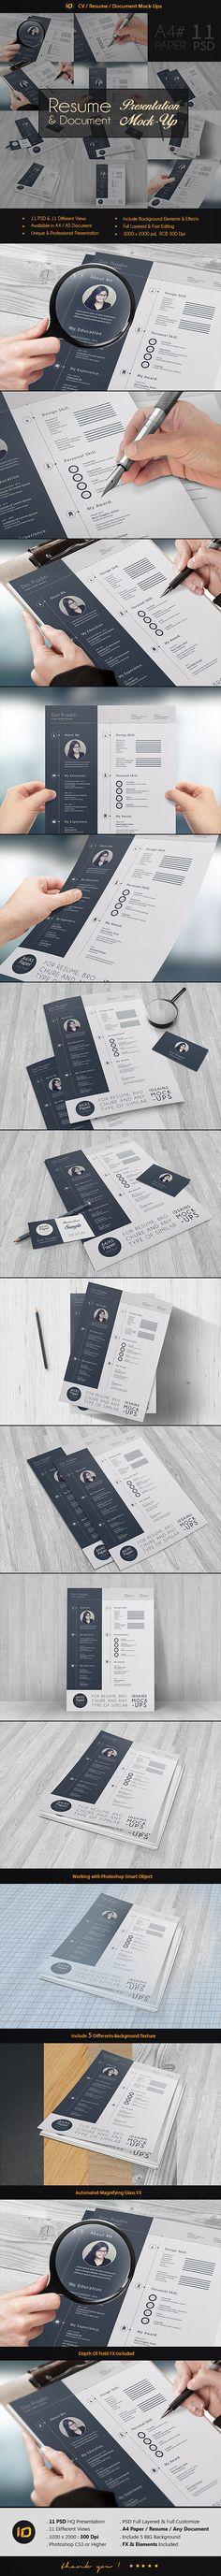 Metal Round Box Mock-up - Food and Drink Packaging Portfolio - mock resume